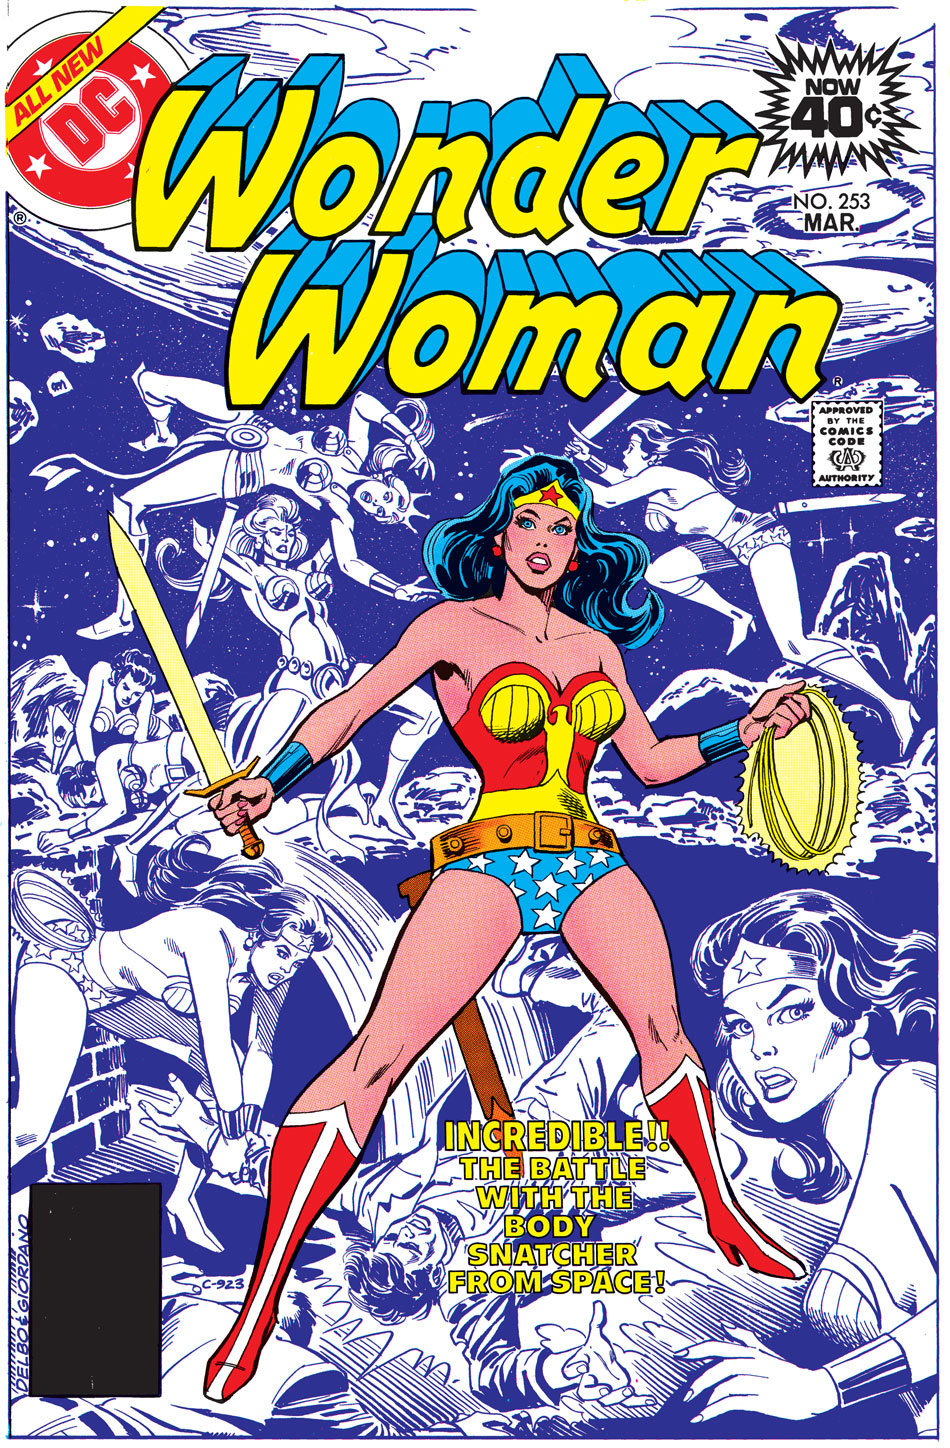 1979: In the 1970s, Wonder Woman grows in popularity thanks to the television show starring Lynda Carter.